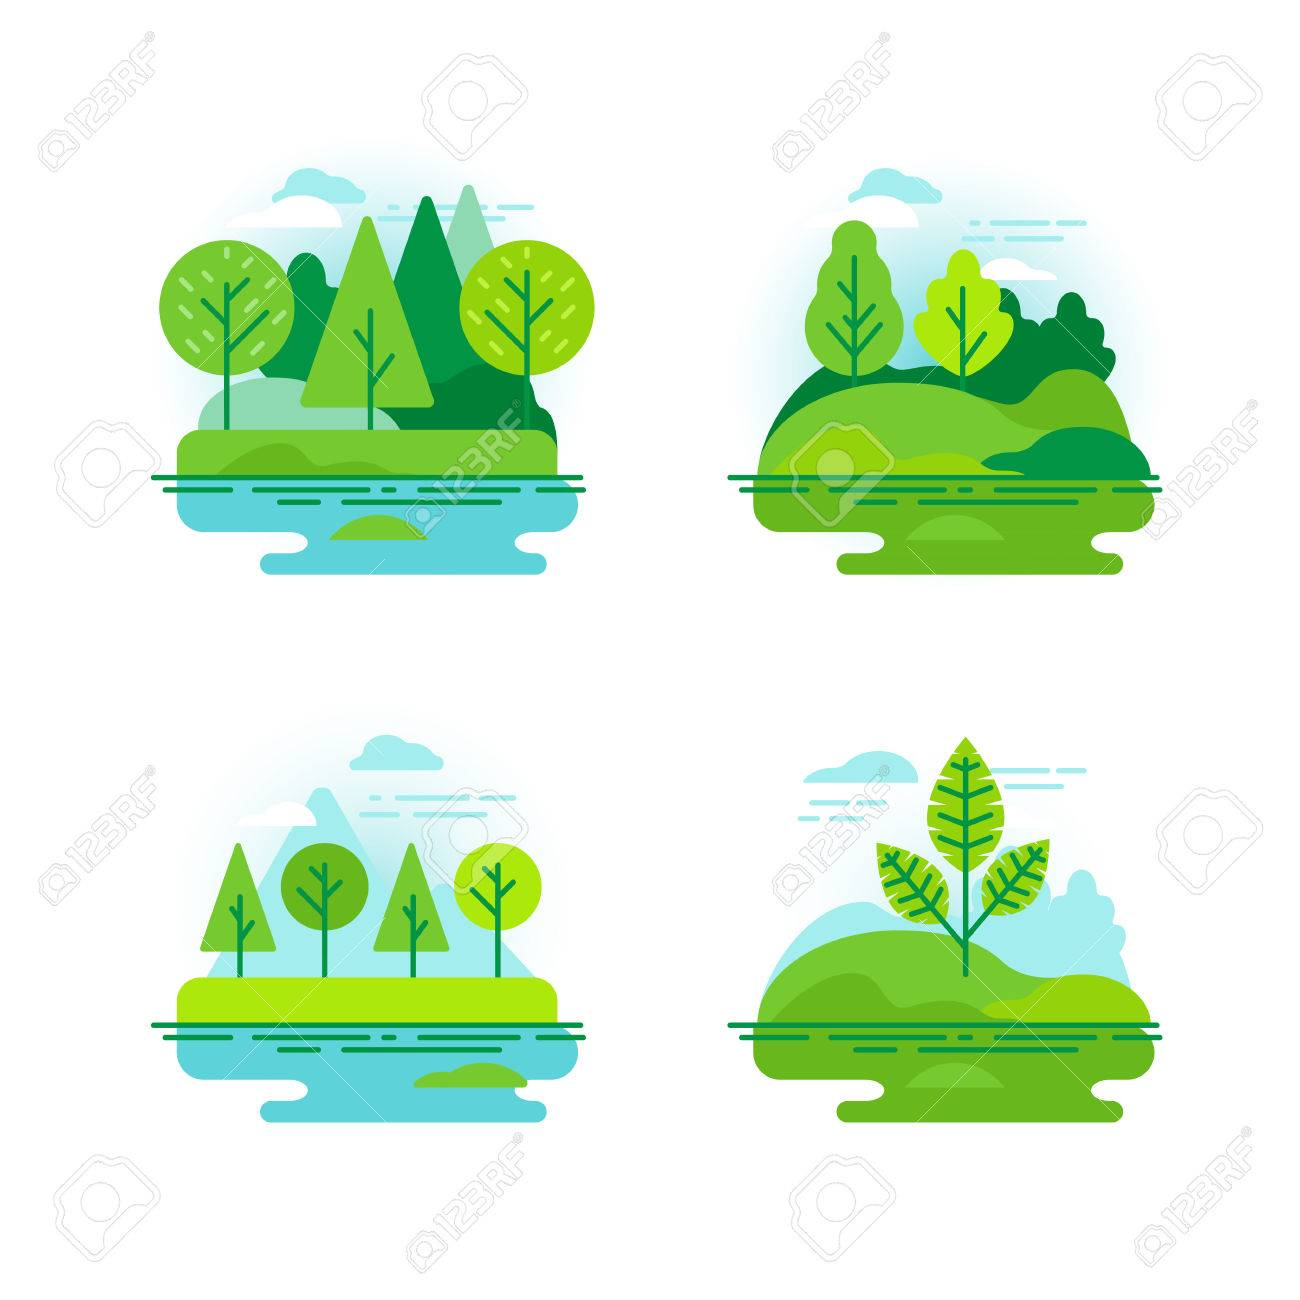 Vector set of icons and illustration in flat linear style - nature landscapes with green trees - 72098633